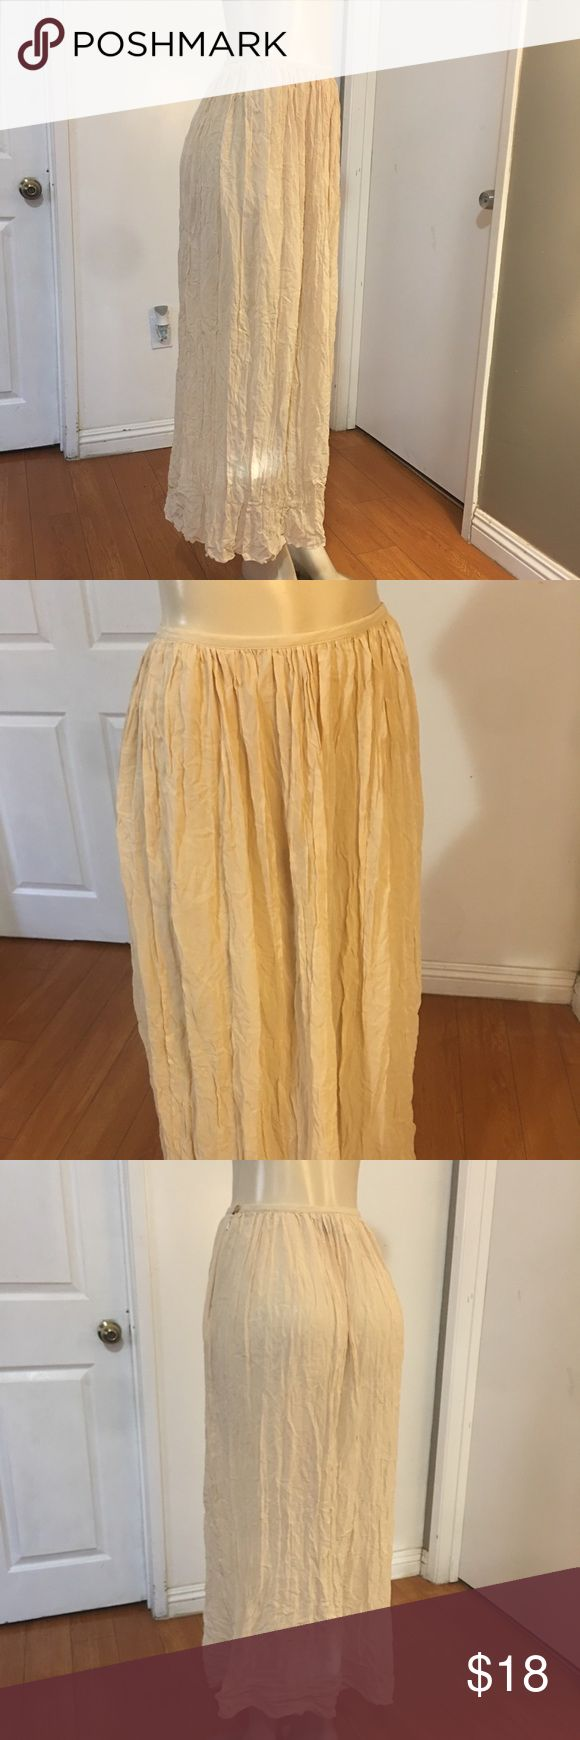 Calvin Klein Vintage Hippie Maxi Skirt Excellent condition  100% Silk Sheer fabric  Size 6 fits like modern S  54 inches length  28 inches waist Calvin Klein Skirts Maxi